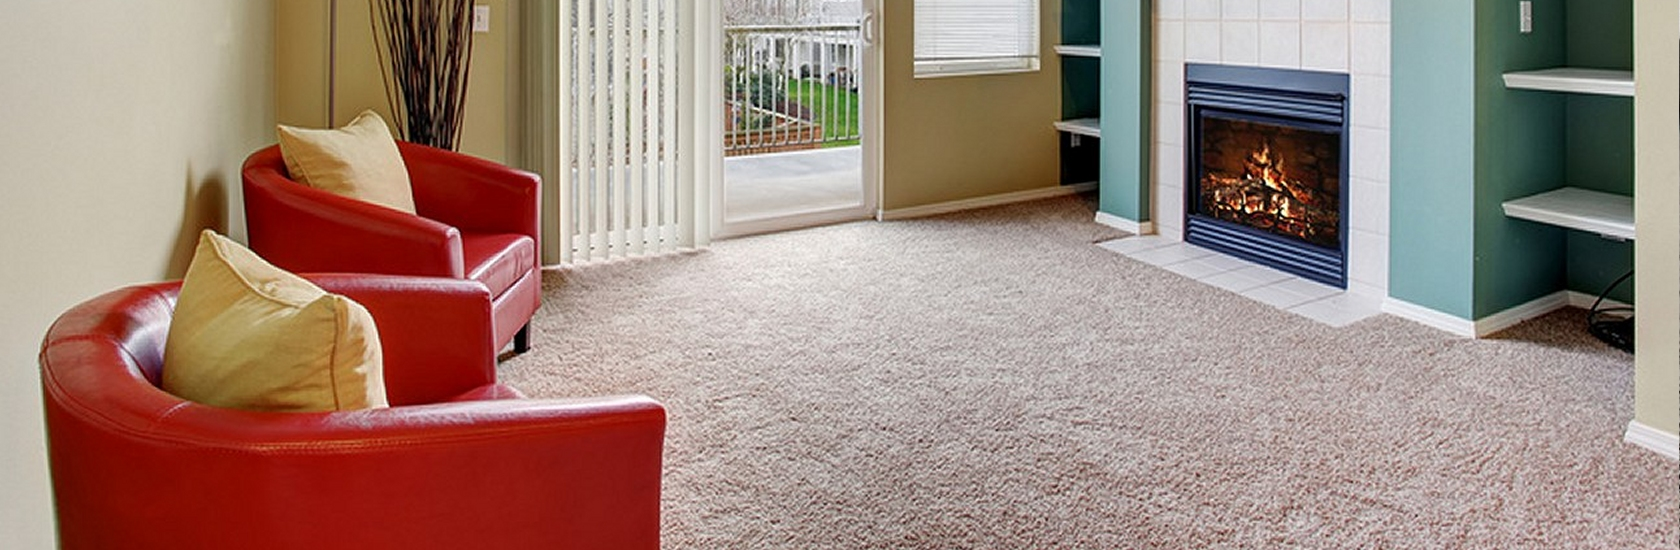 carpet cleaning Eastleigh